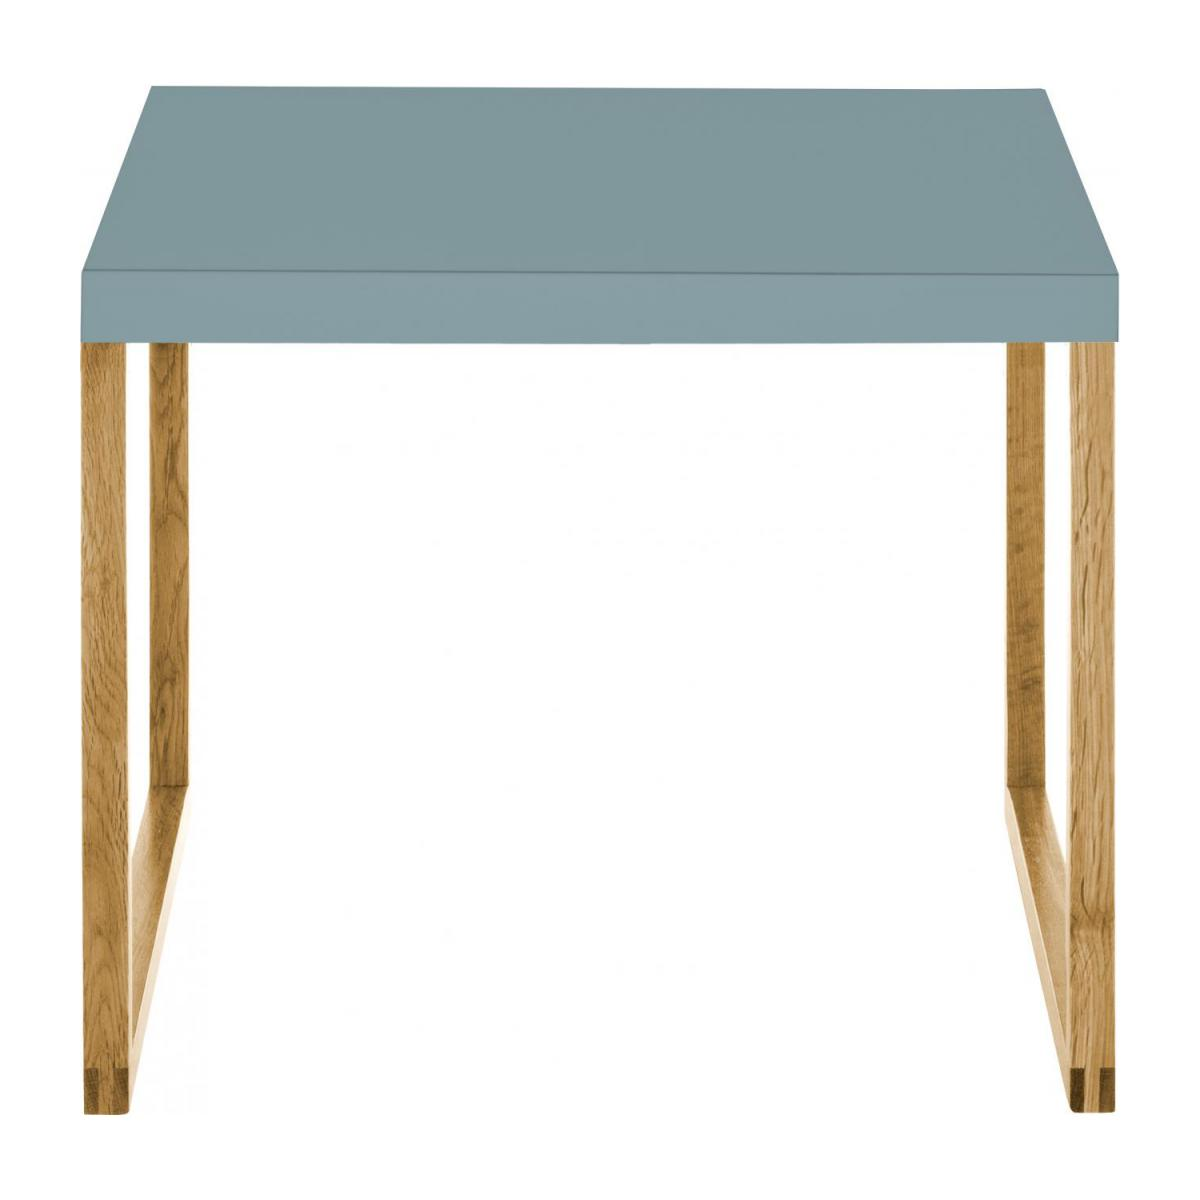 Table d'appoint - Bleu orage n°3